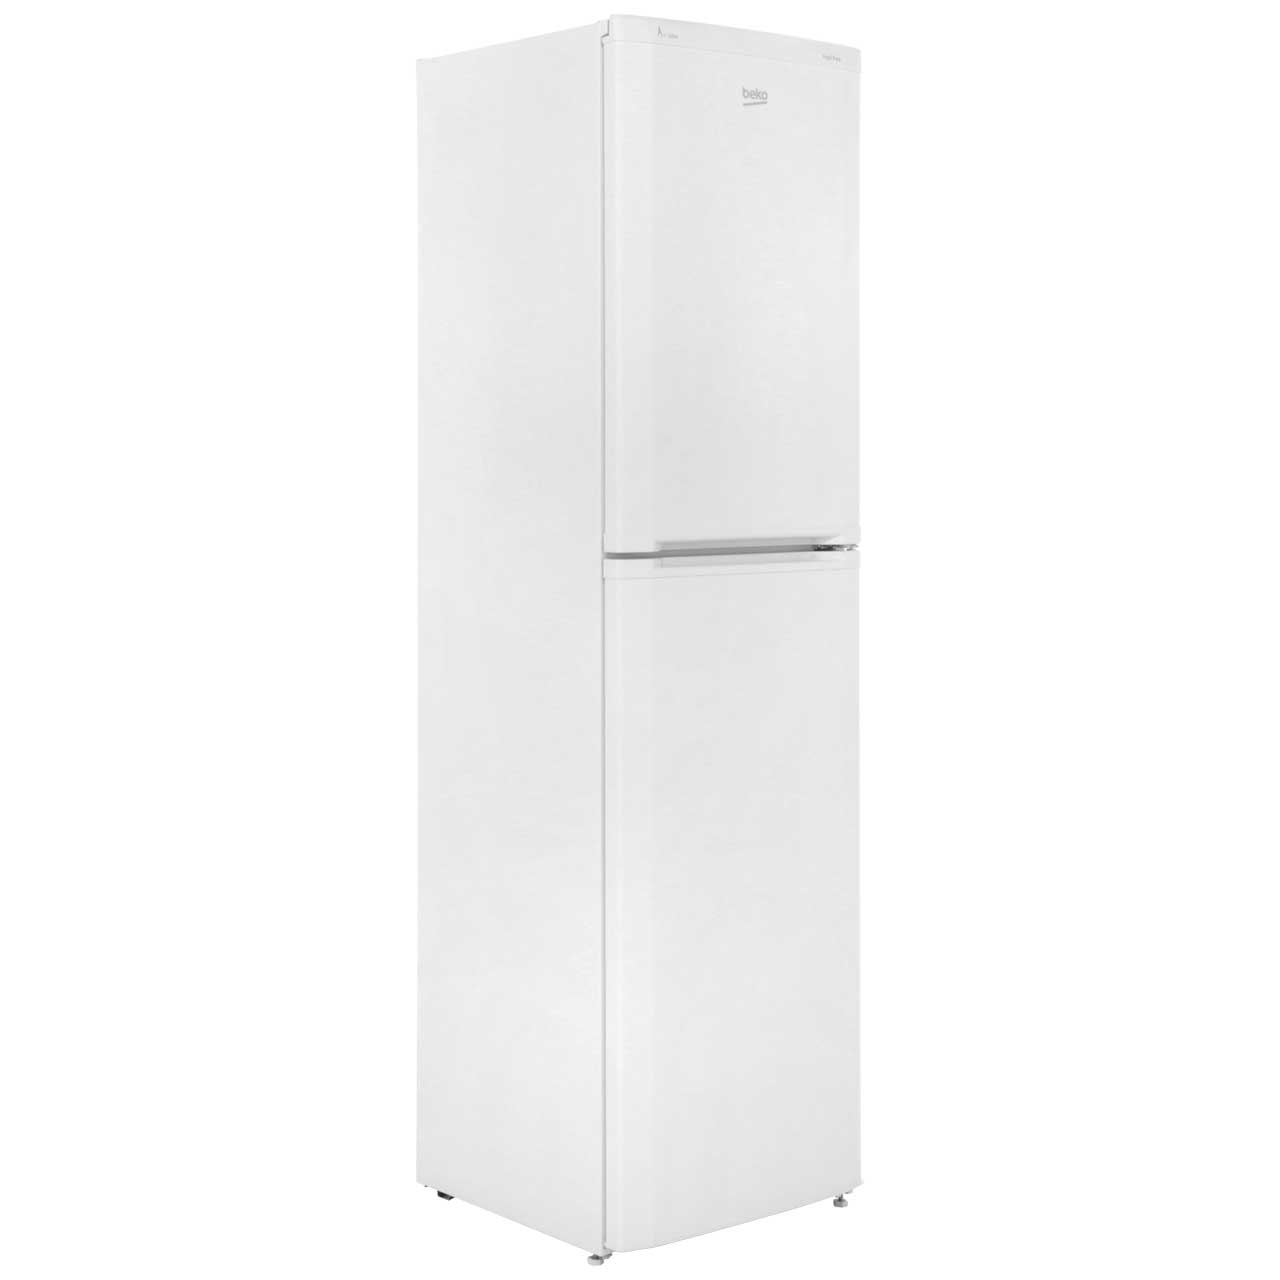 Beko CF5015APW Free Standing Fridge Freezer Frost Free in White